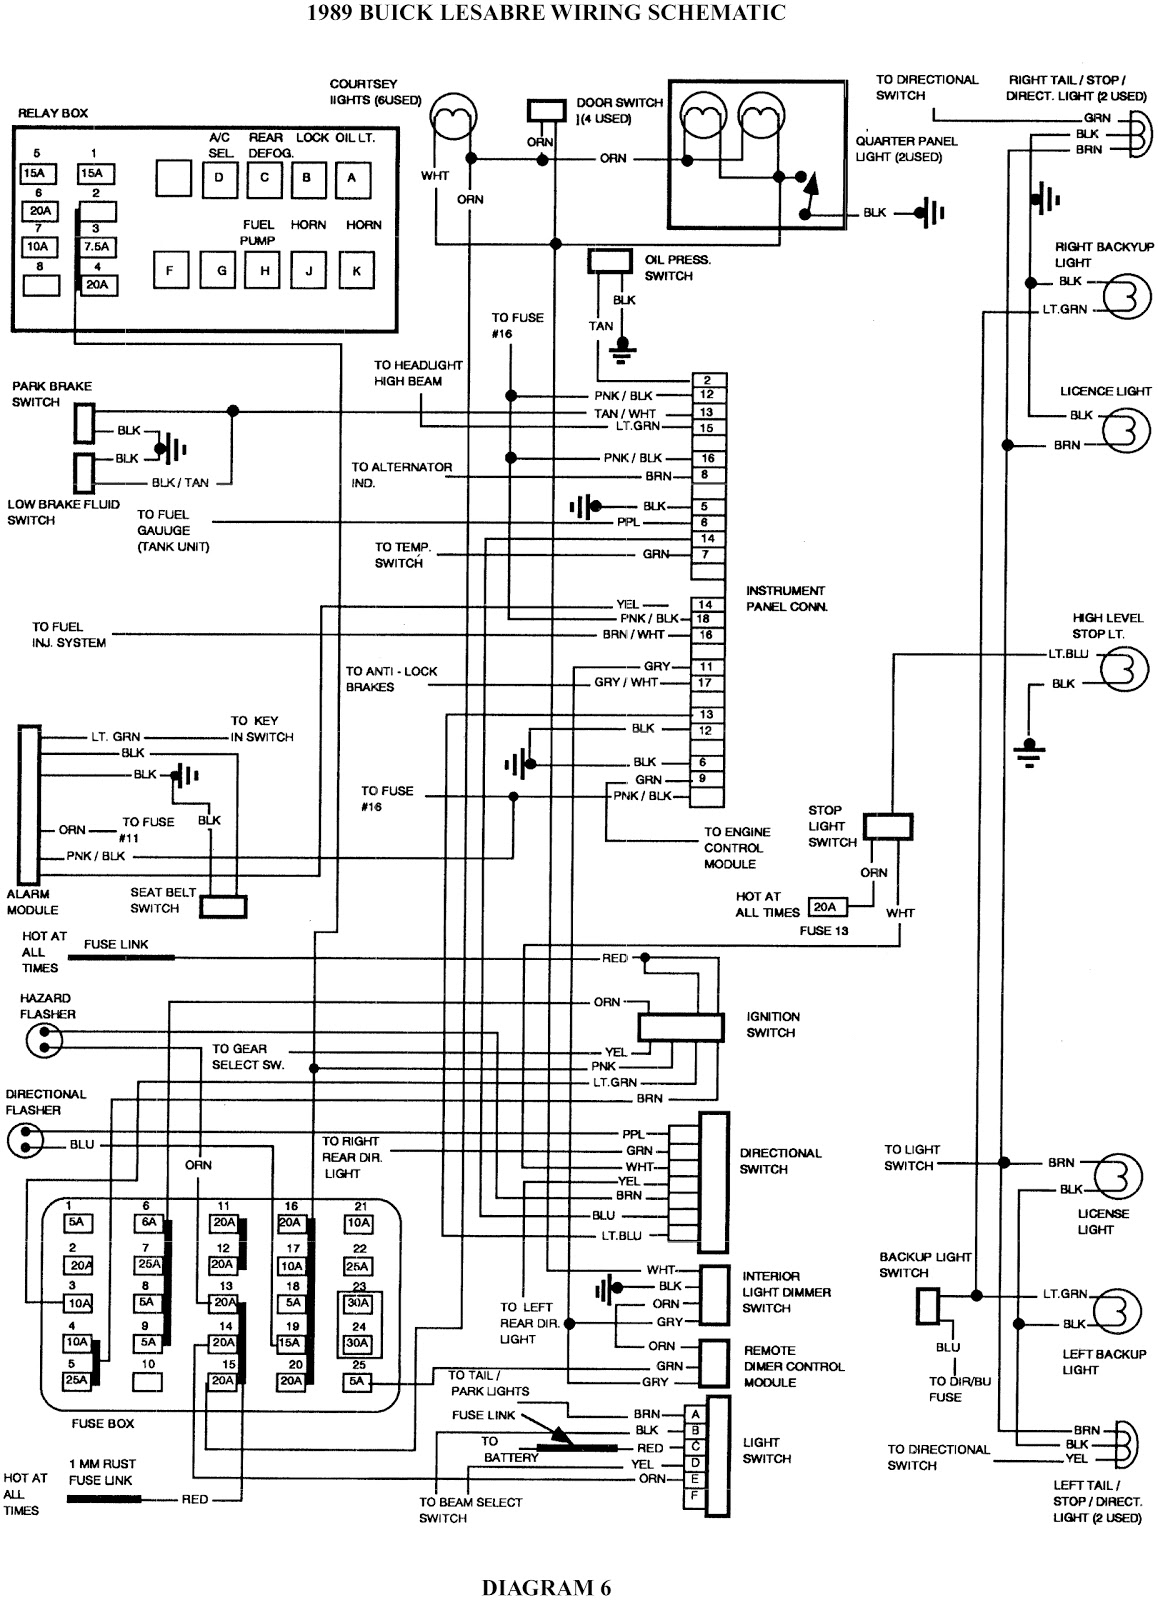 99 buick century radio wire harness diagram get free image about wiring diagram